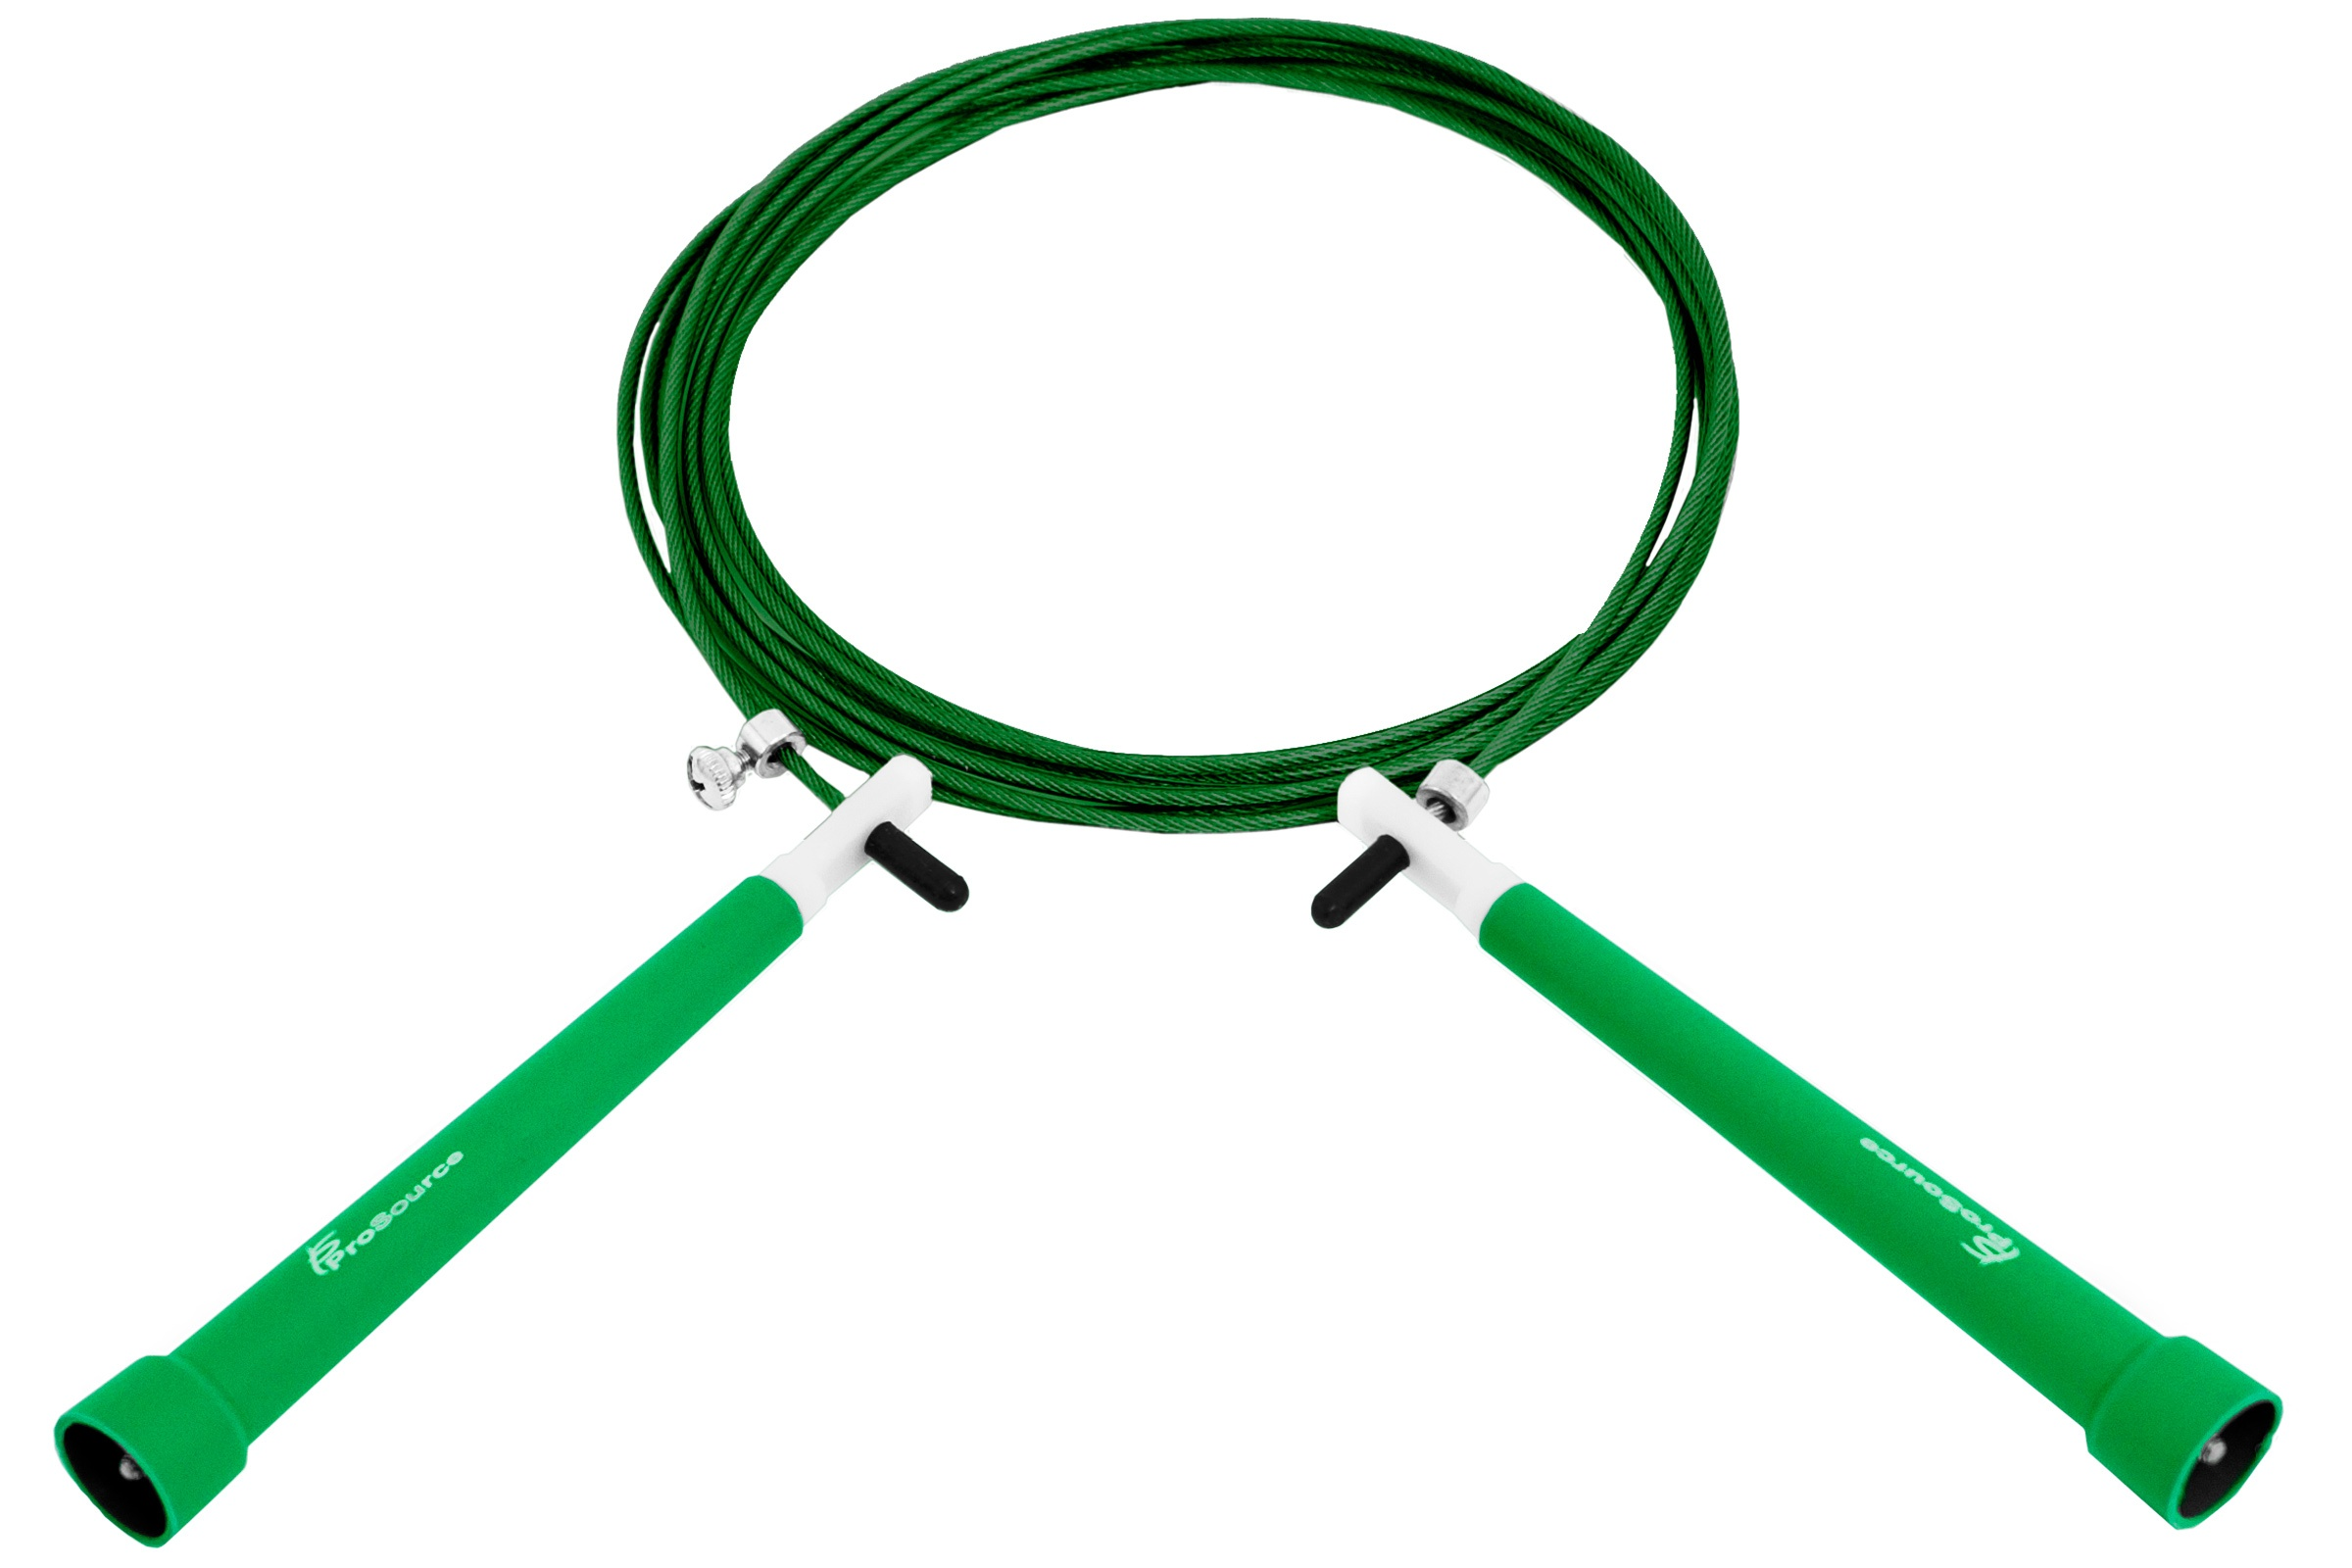 speed-jump-rope-green-2.jpg